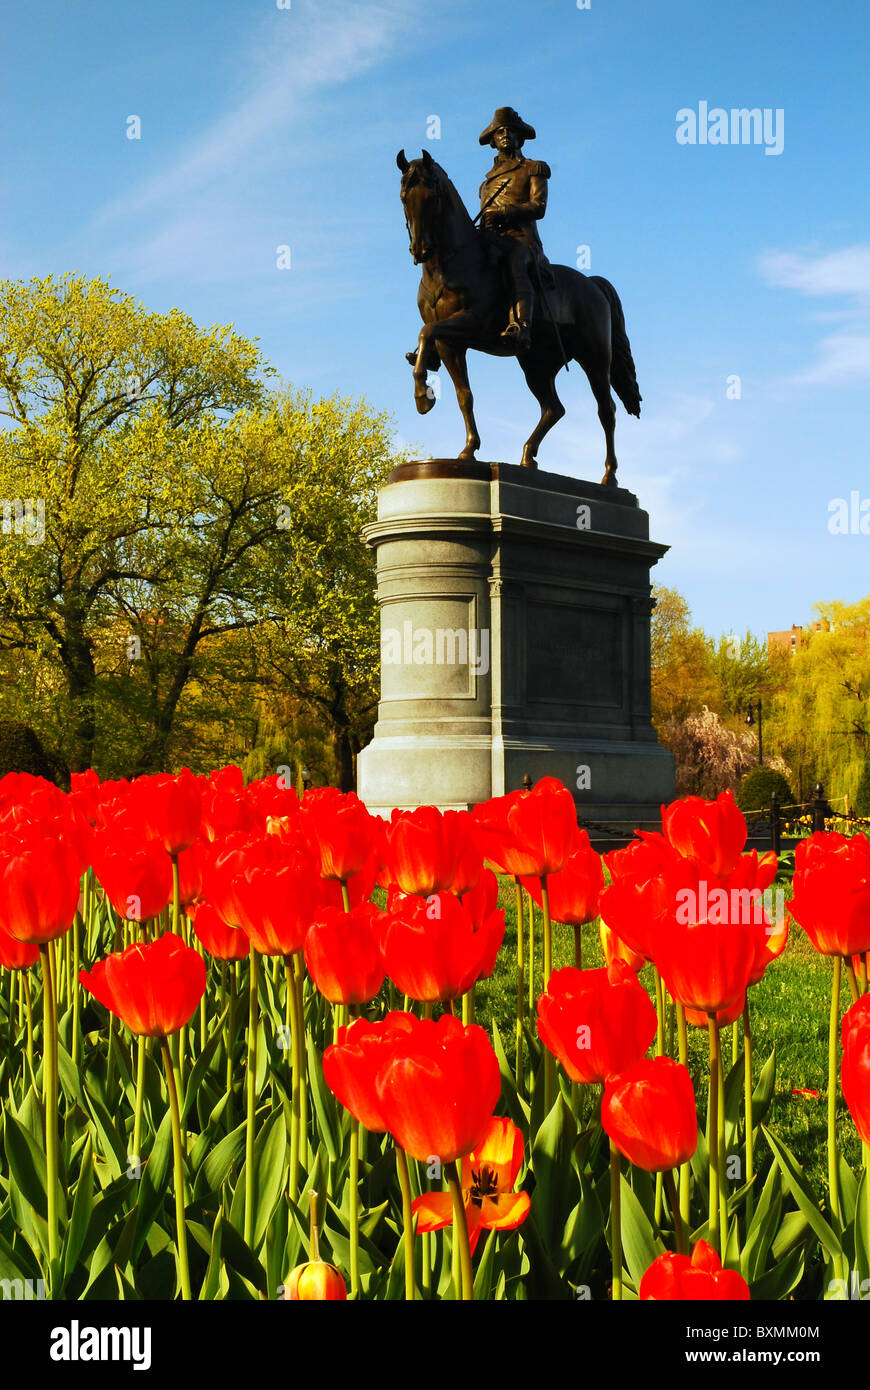 A Statue of George Washington highlights the Boston Public Garden in Spring - Stock Image